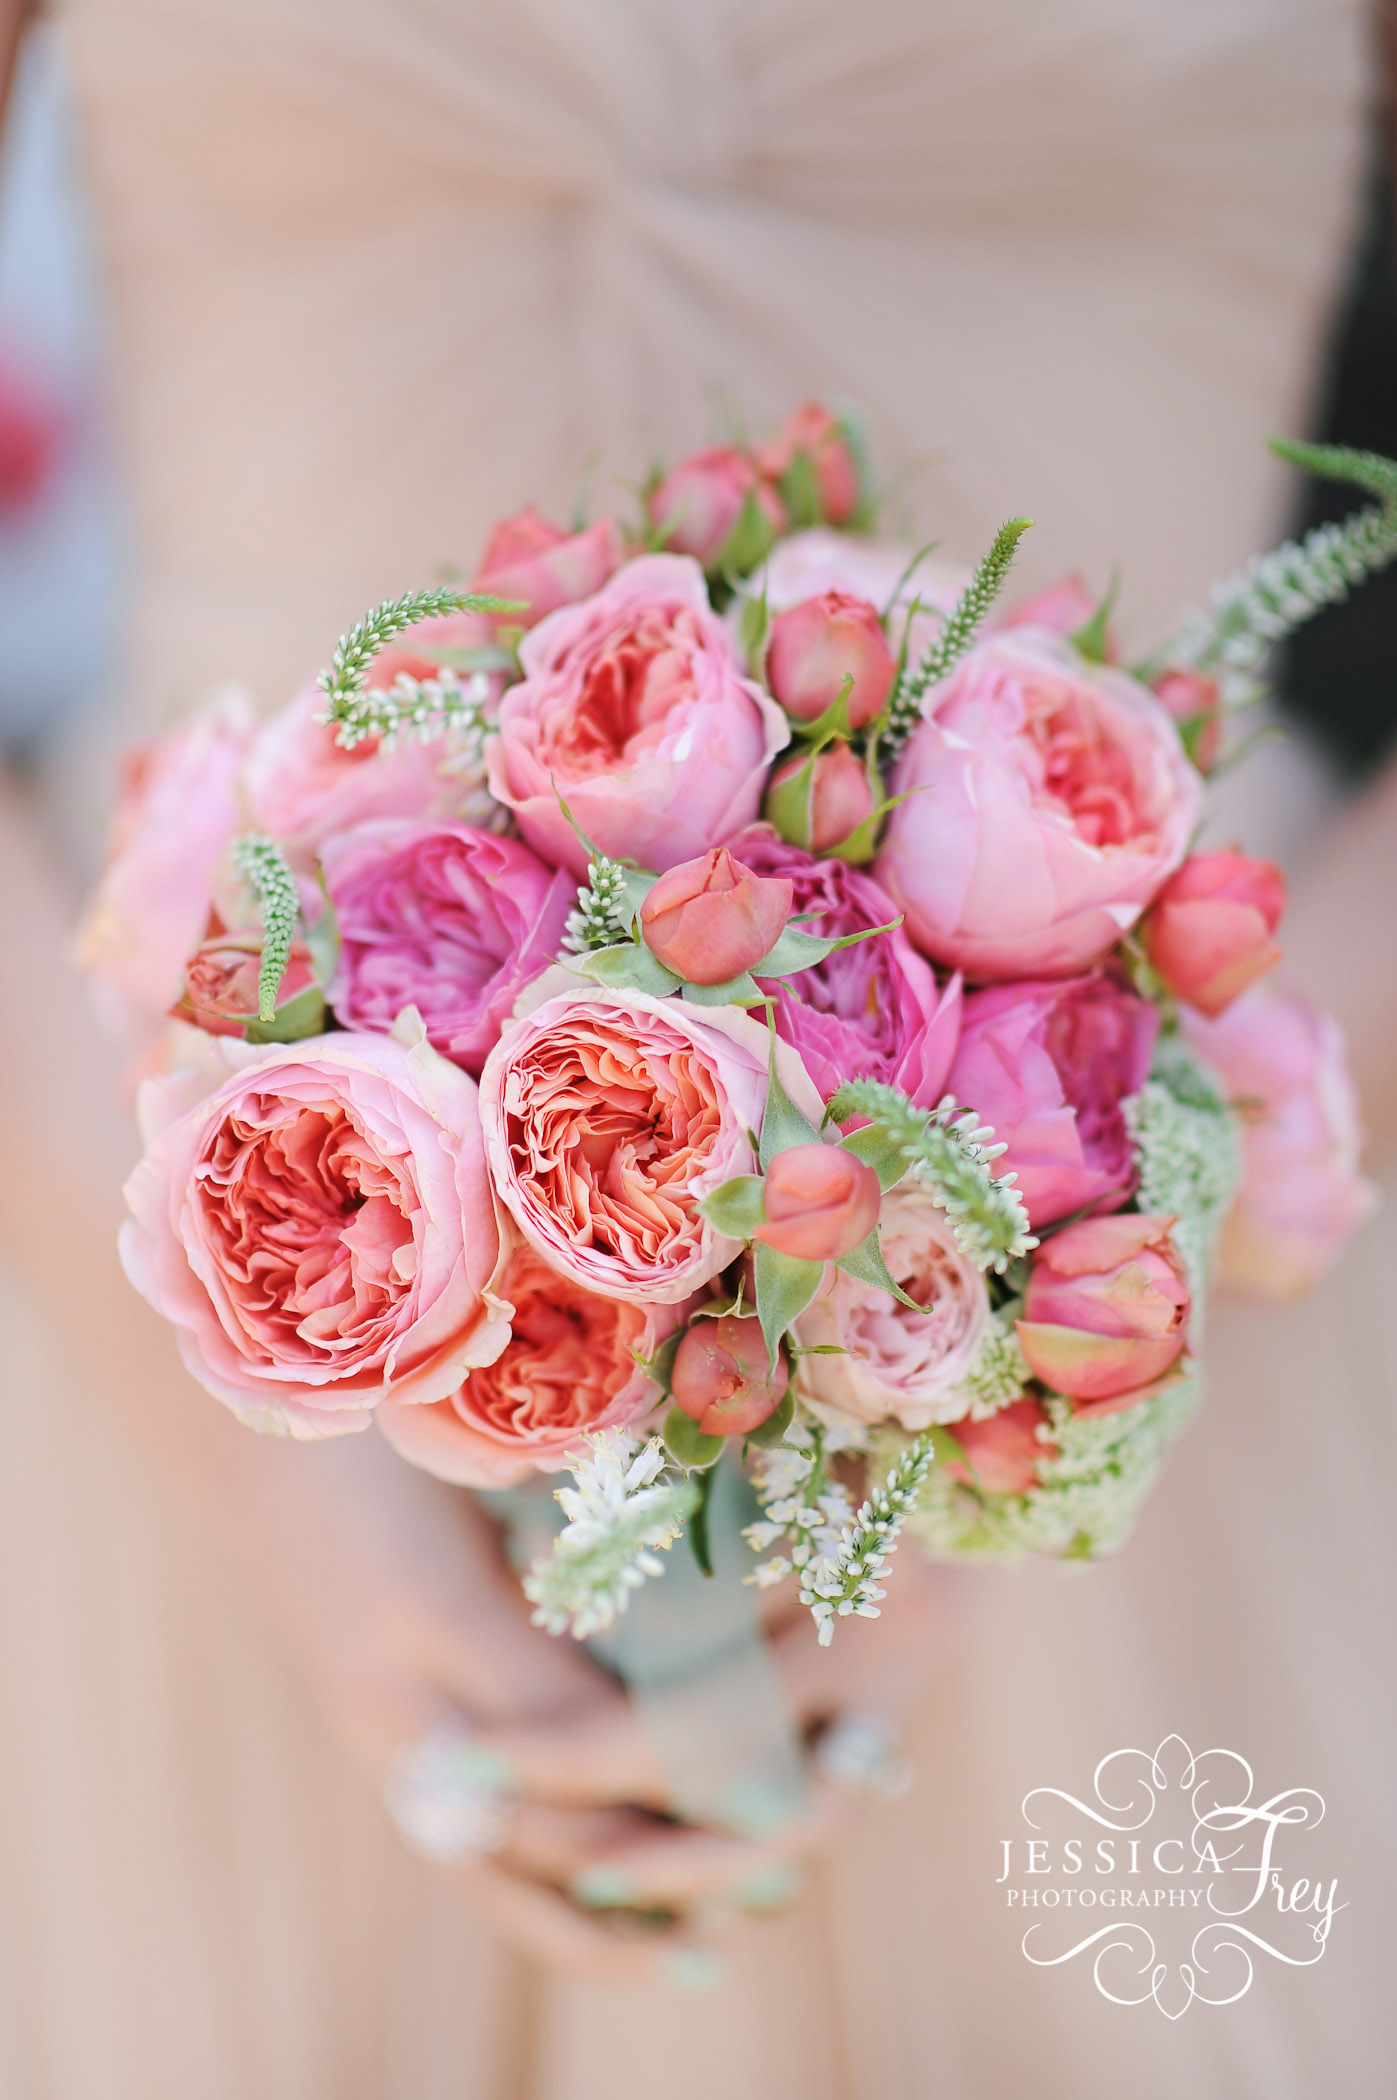 jessica frey photography austin wedding photographer beautiful pink and coral bridal bouquet